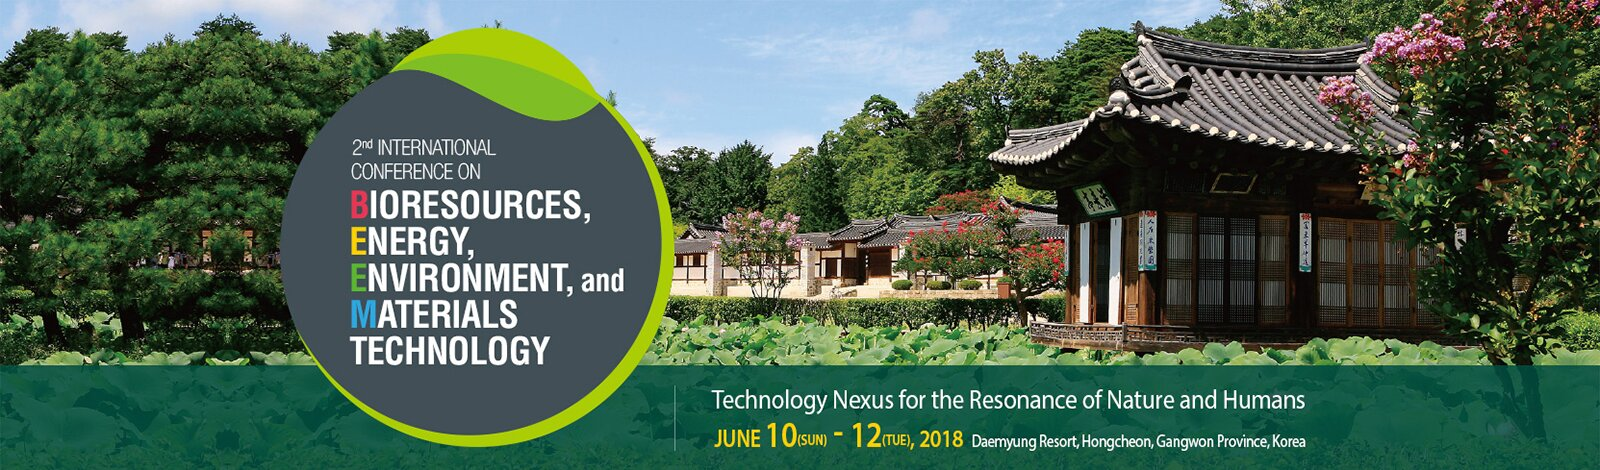 2nd International Conference on Bioresources, Energy, Environment, and Materials Technology